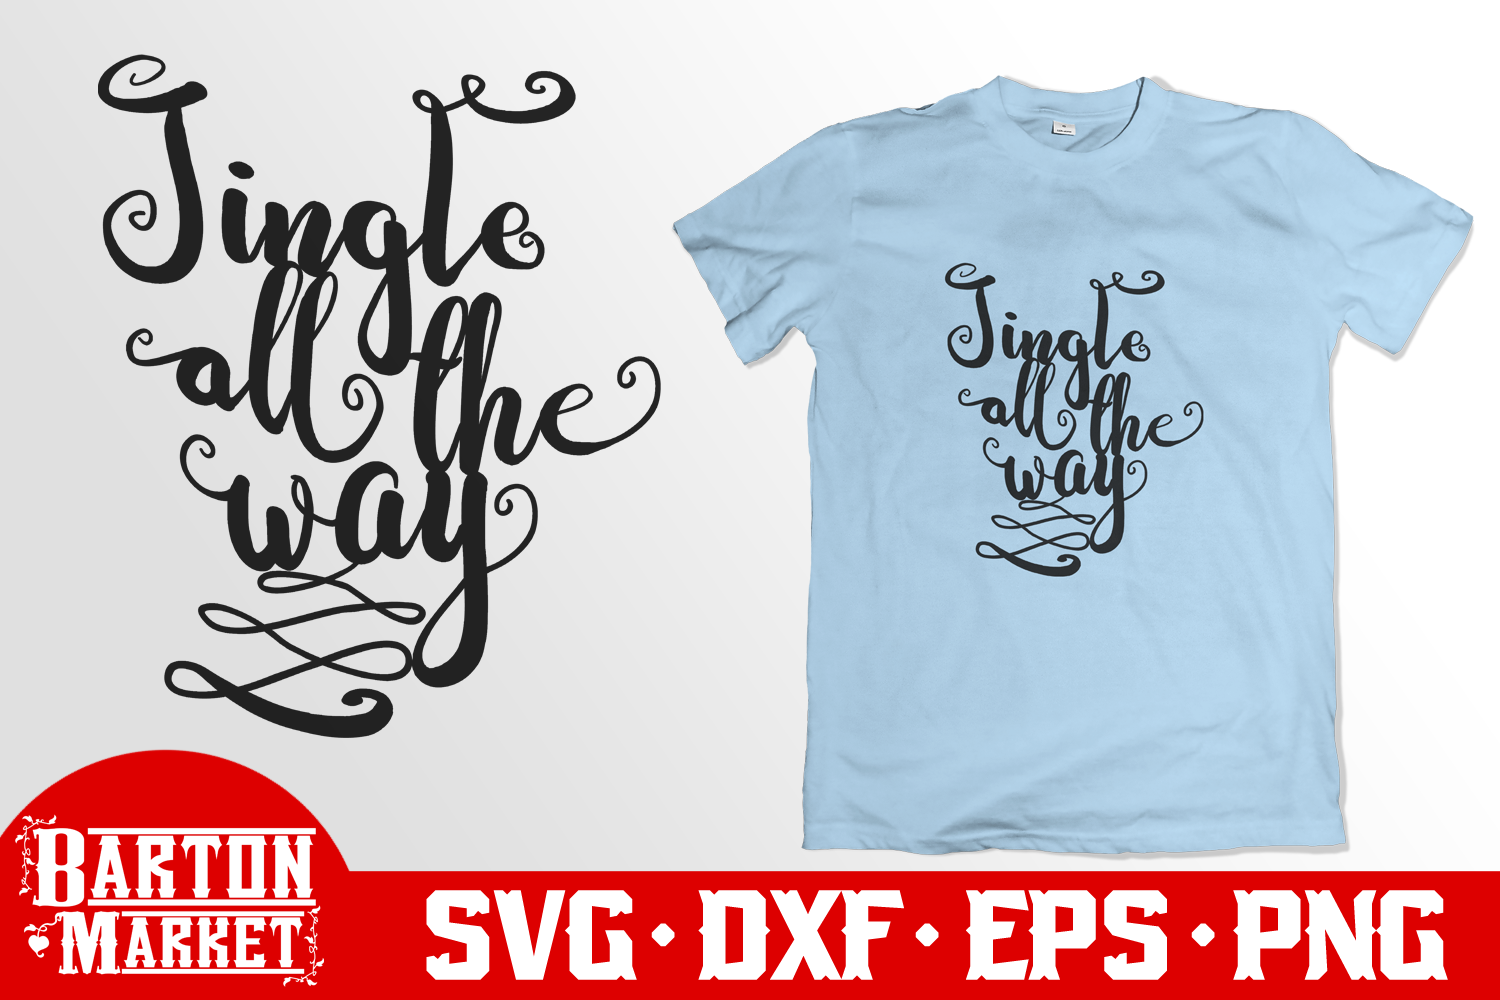 Jingle All The Way SVG DXF EPS PNG example image 2